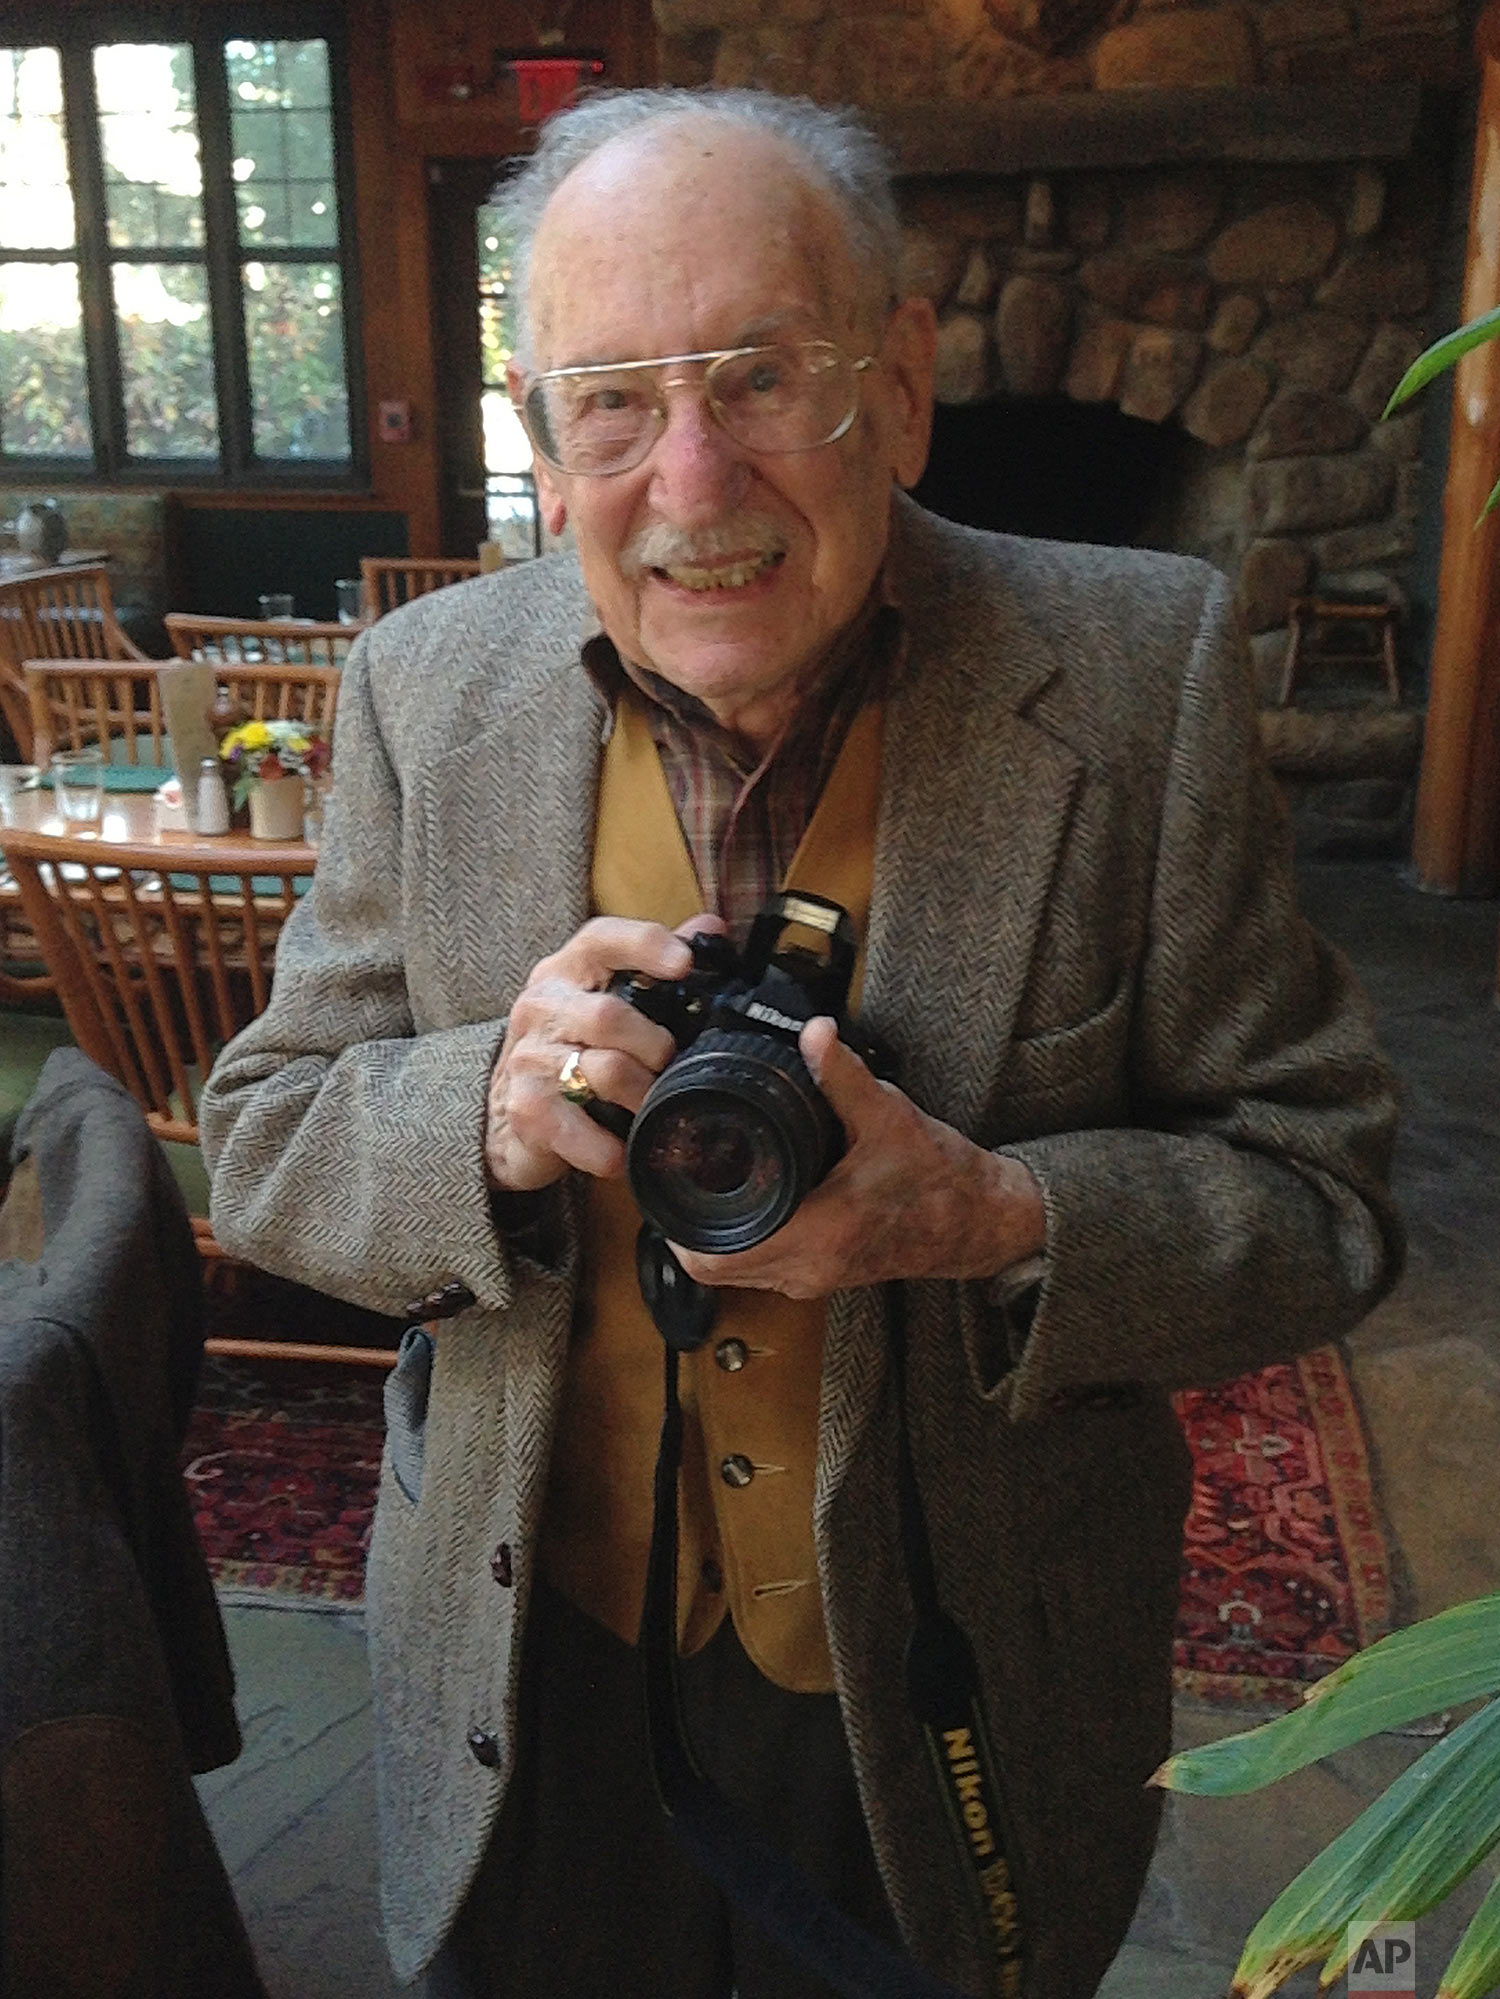 Max Desfor pauses for a photo on Nov. 16, 2012, in Rockville, Md., at his 99th birthday party. Desfor, a former Associated Press photographer who won a Pulitzer Prize for his coverage of the Korean War died Monday, Feb. 19, 2018. He was 104.  (AP Photo/Jon Elswick)